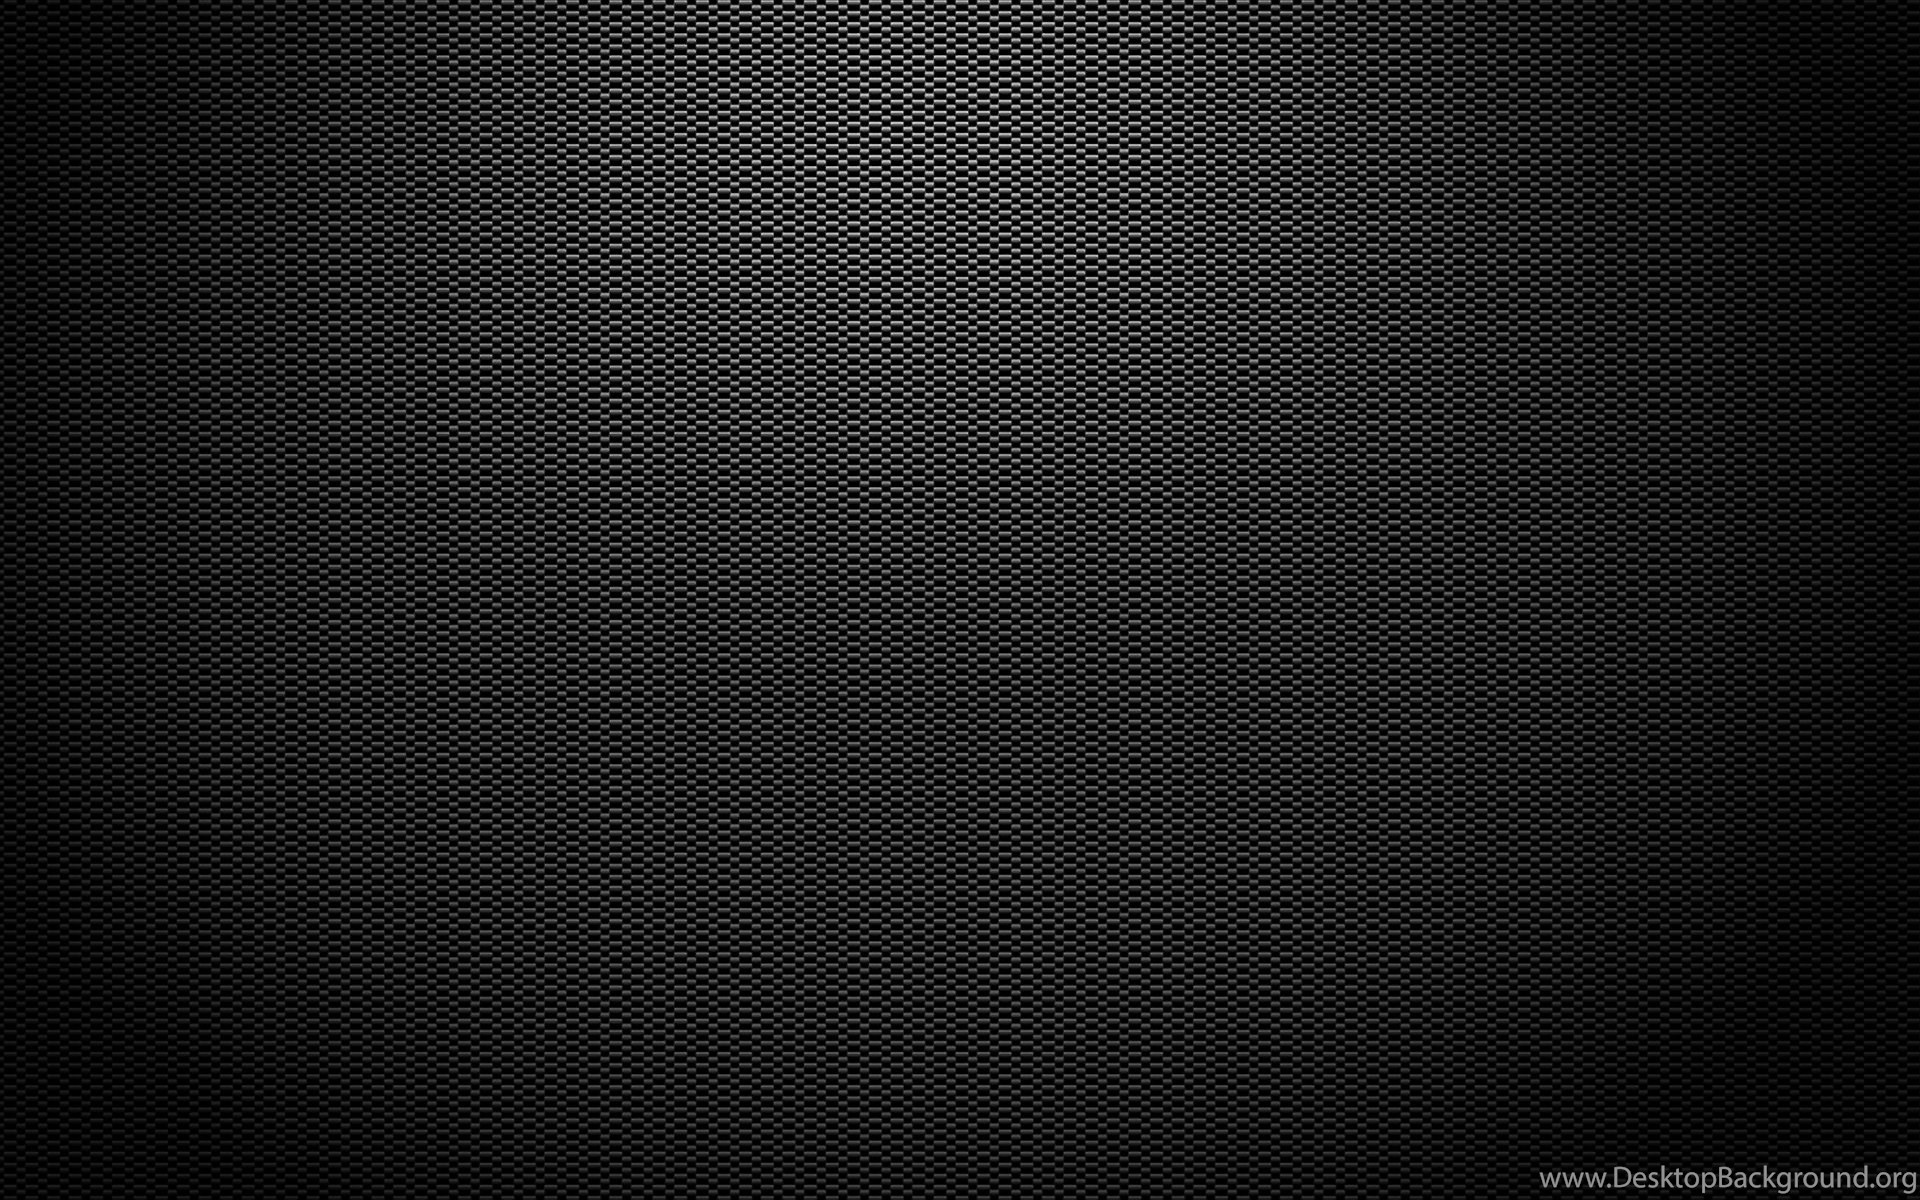 Hd Background Wallpaper 800x600: Carbon Fiber HD Wallpapers Desktop Background